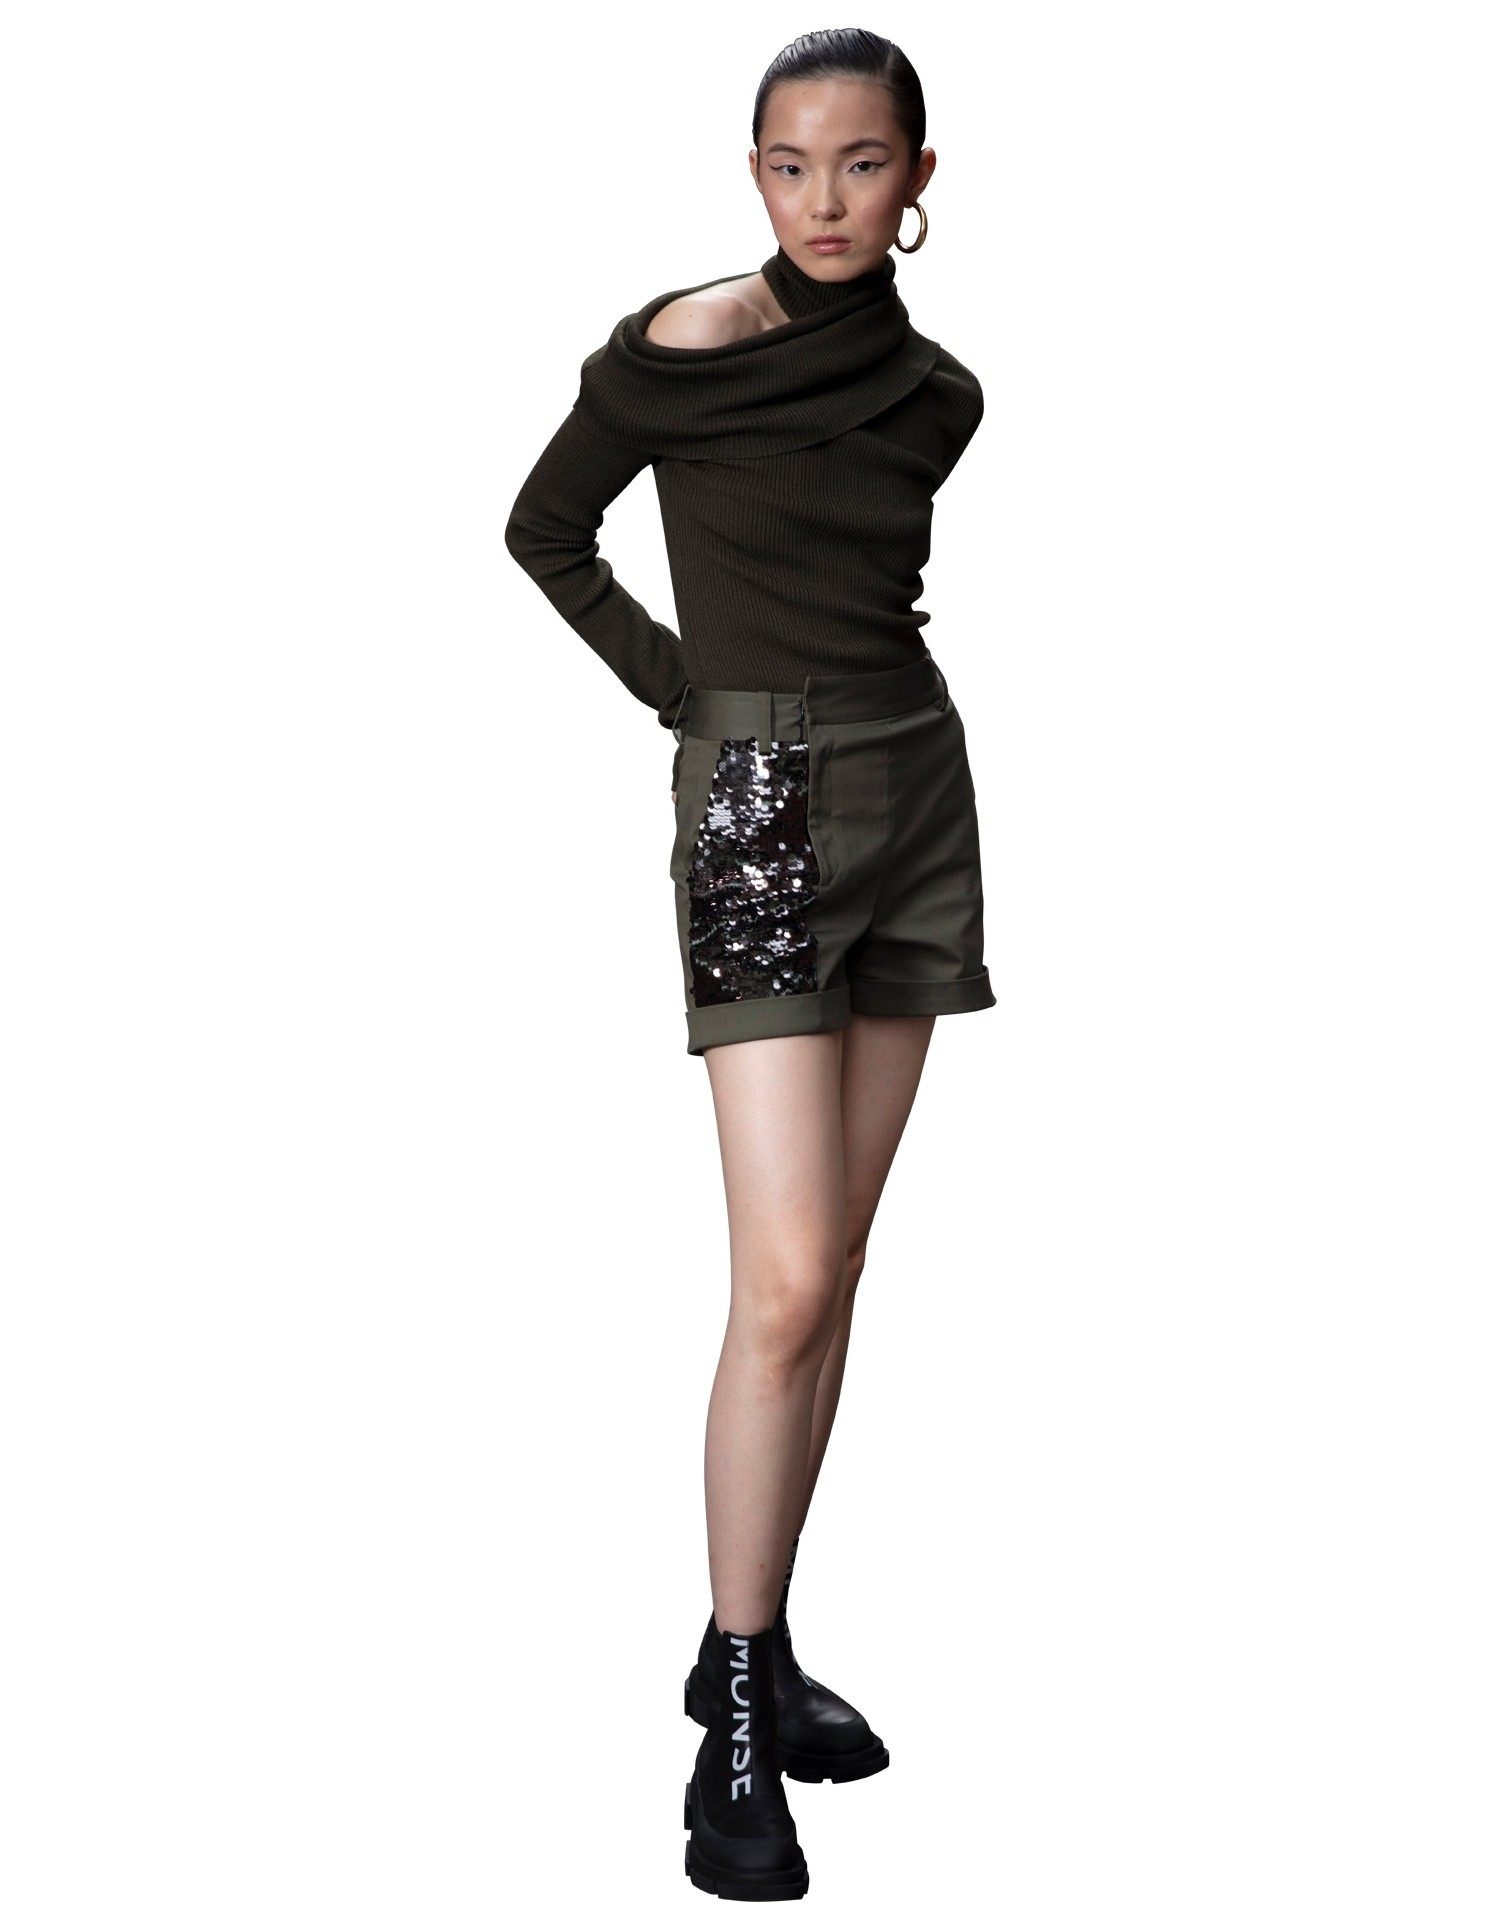 MONSE Foldover Draped Knit in Olive on Model Side View